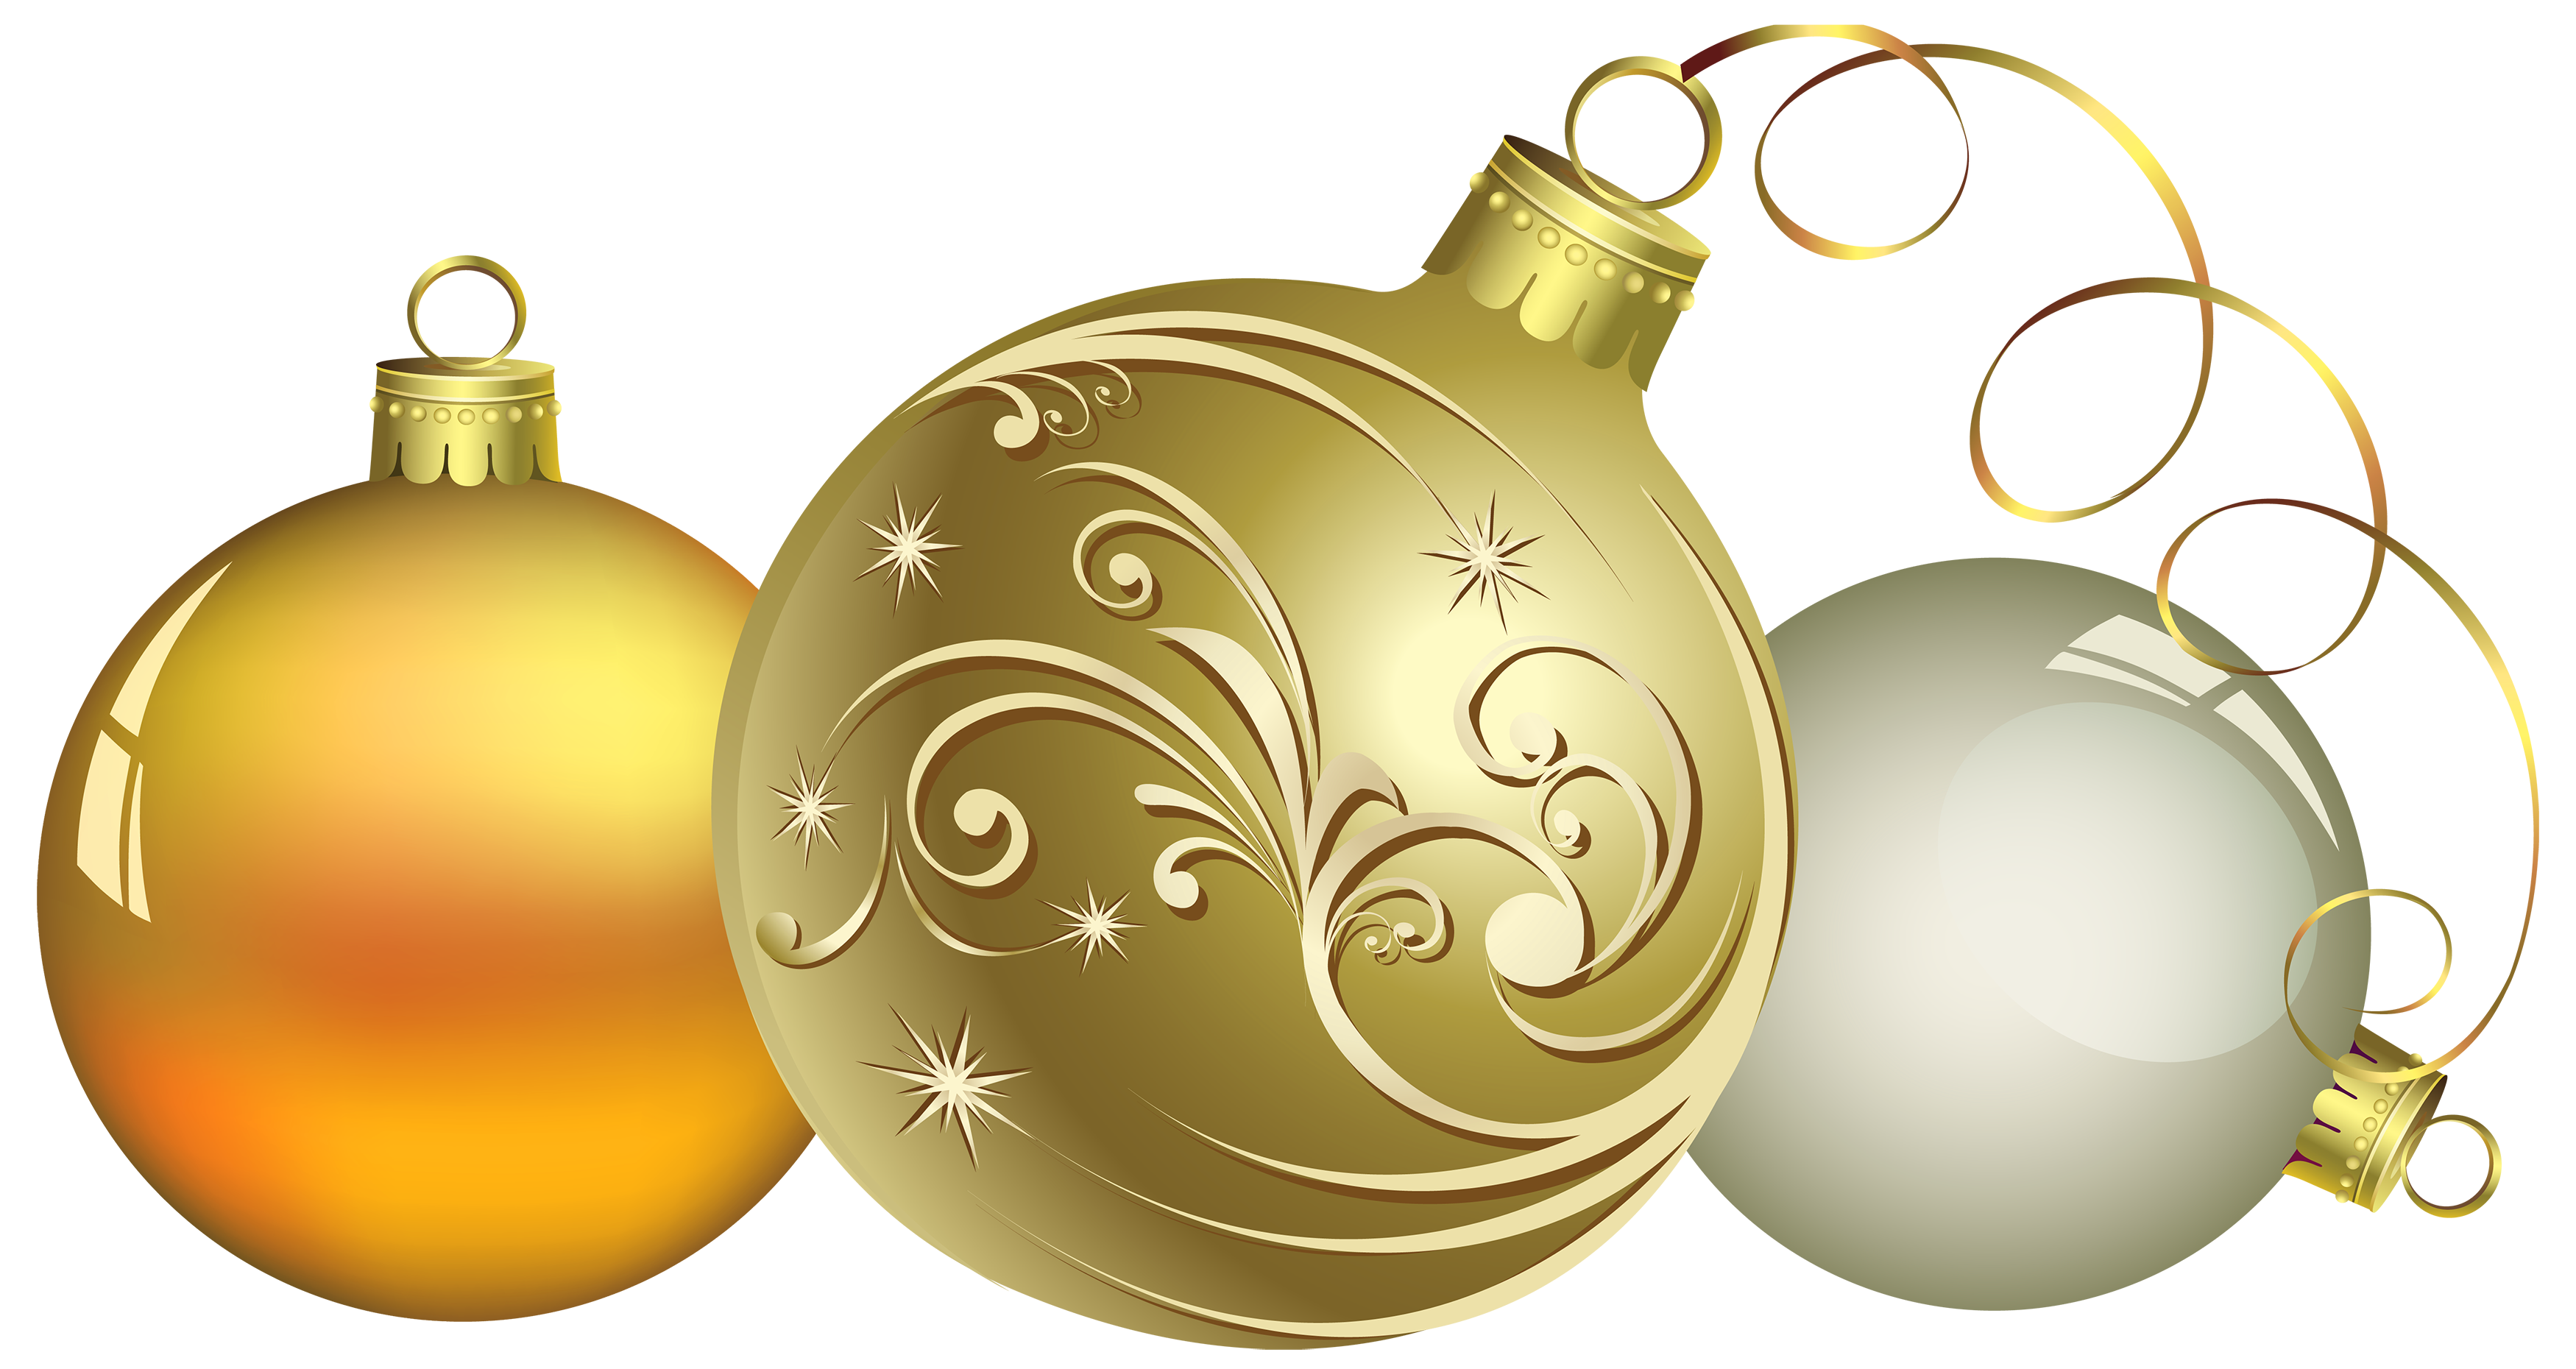 Focus on the holidays clipart high res png clip art transparent library Christmas PNG images download clip art transparent library